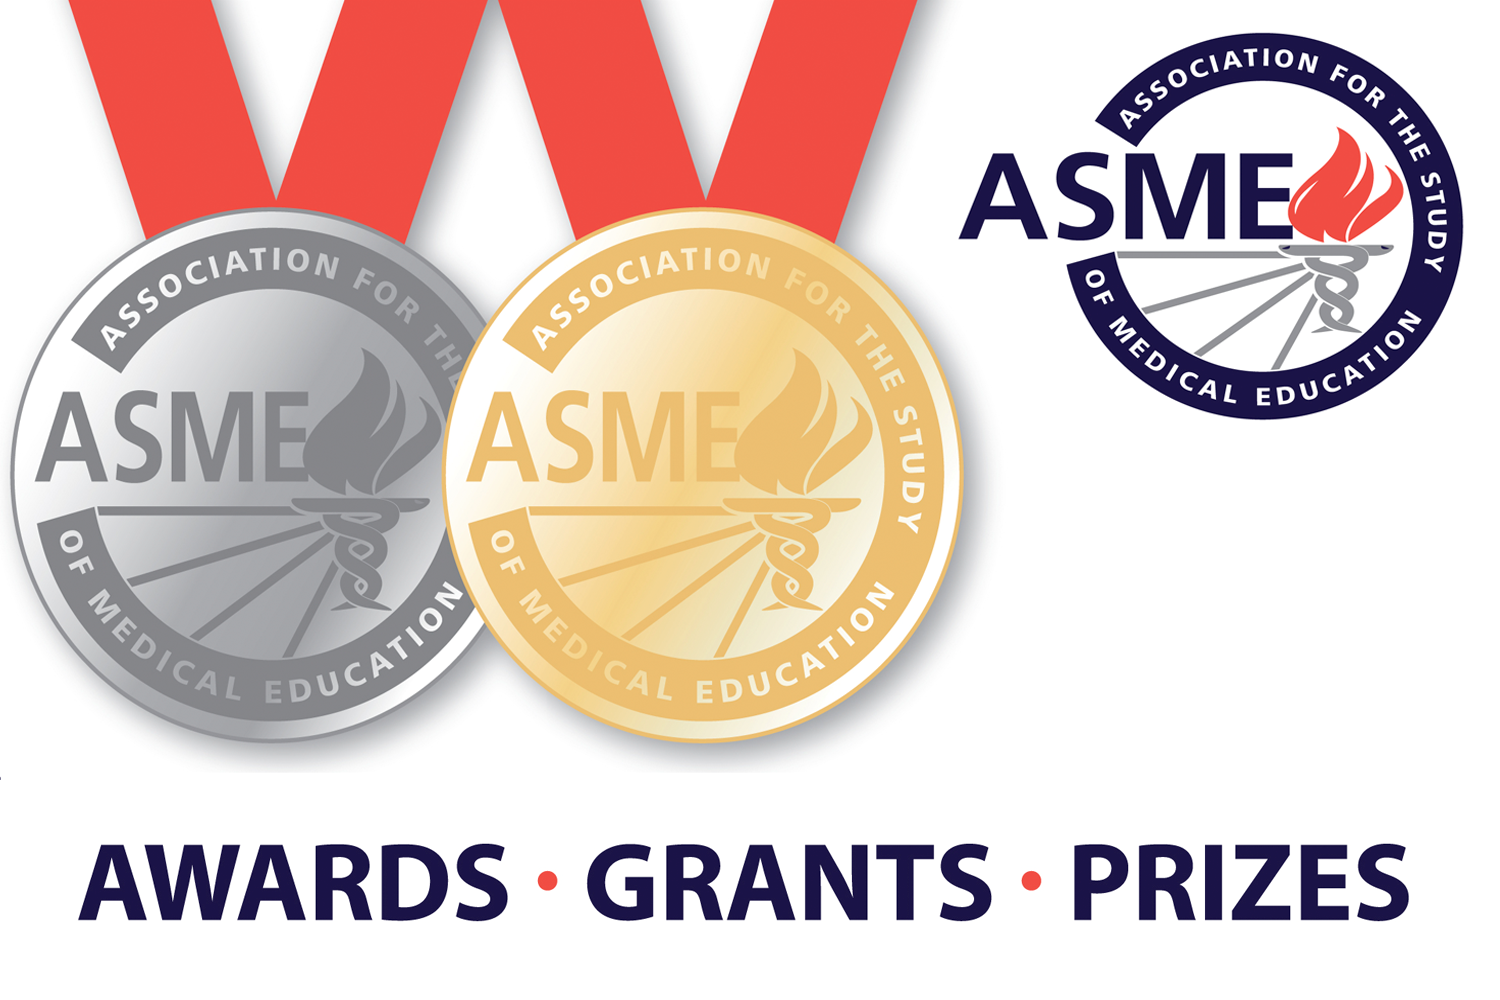 2018 JASME awards now open for submissions